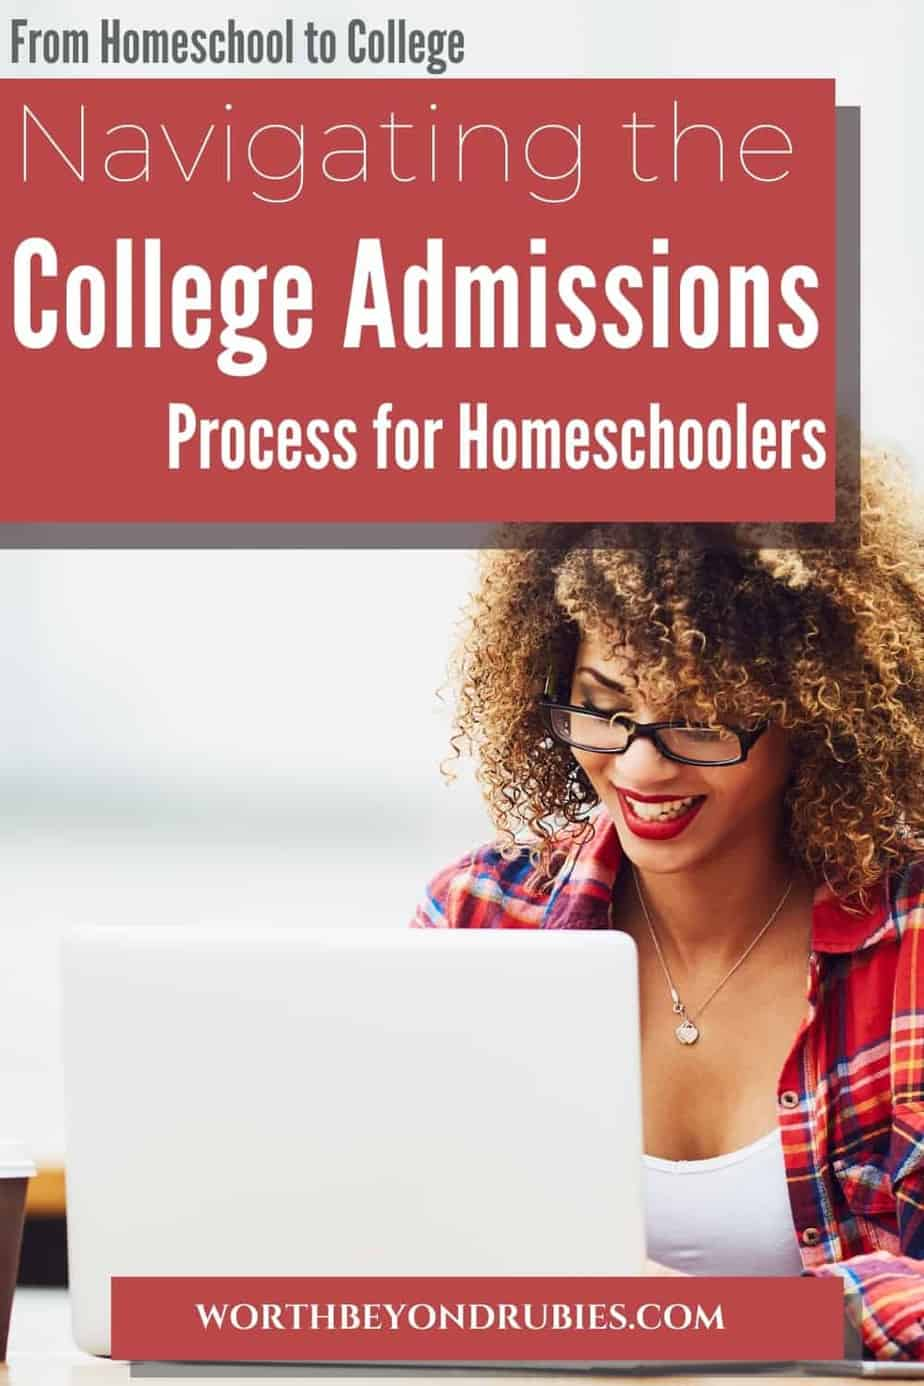 An image of a woman of color with curly hair and glasses in a red flannel shirt sitting at a laptop smiling and a text overlay that says From Homeschool to College - Navigating the College Admissions Process for Homeschoolers